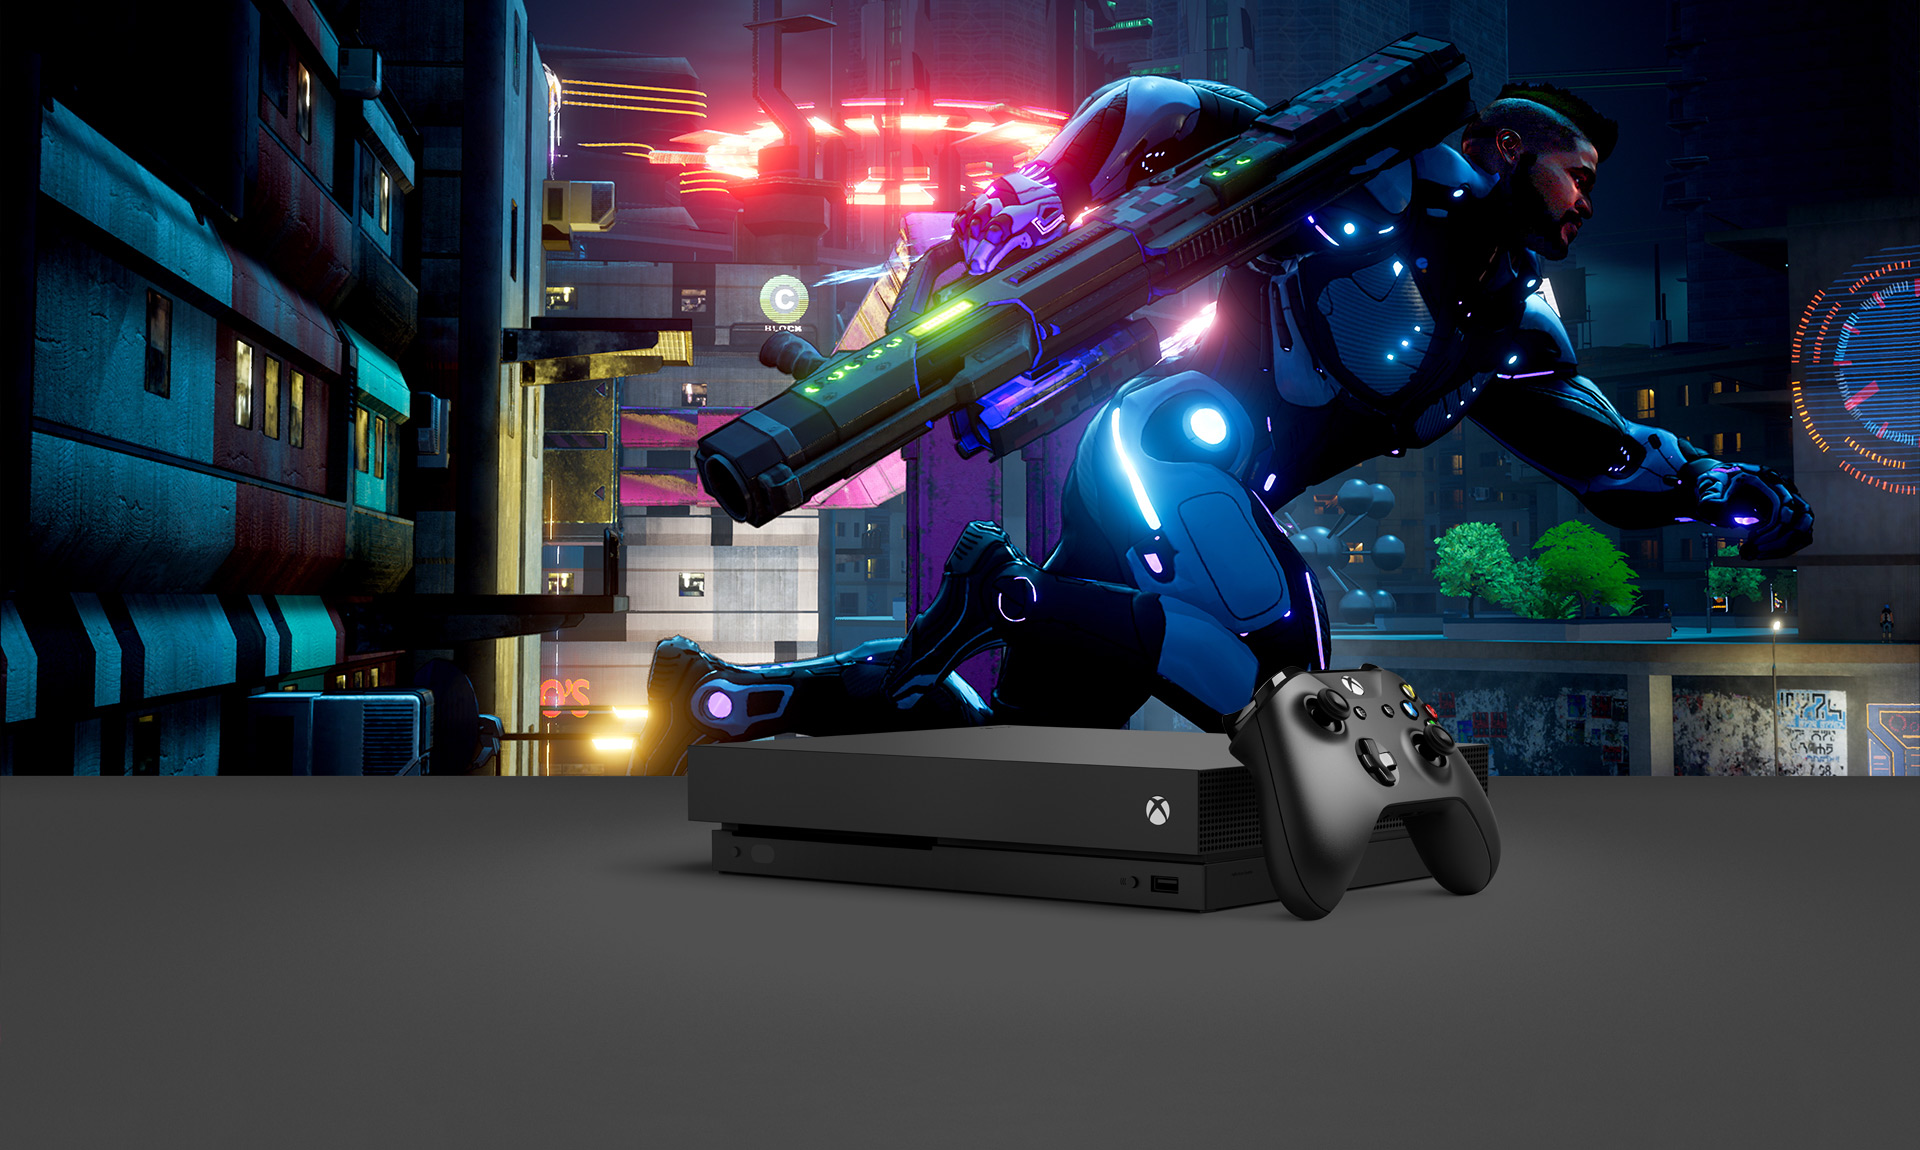 City scene with side view of and Agent running with weapon, with overlay of Xbox One X console